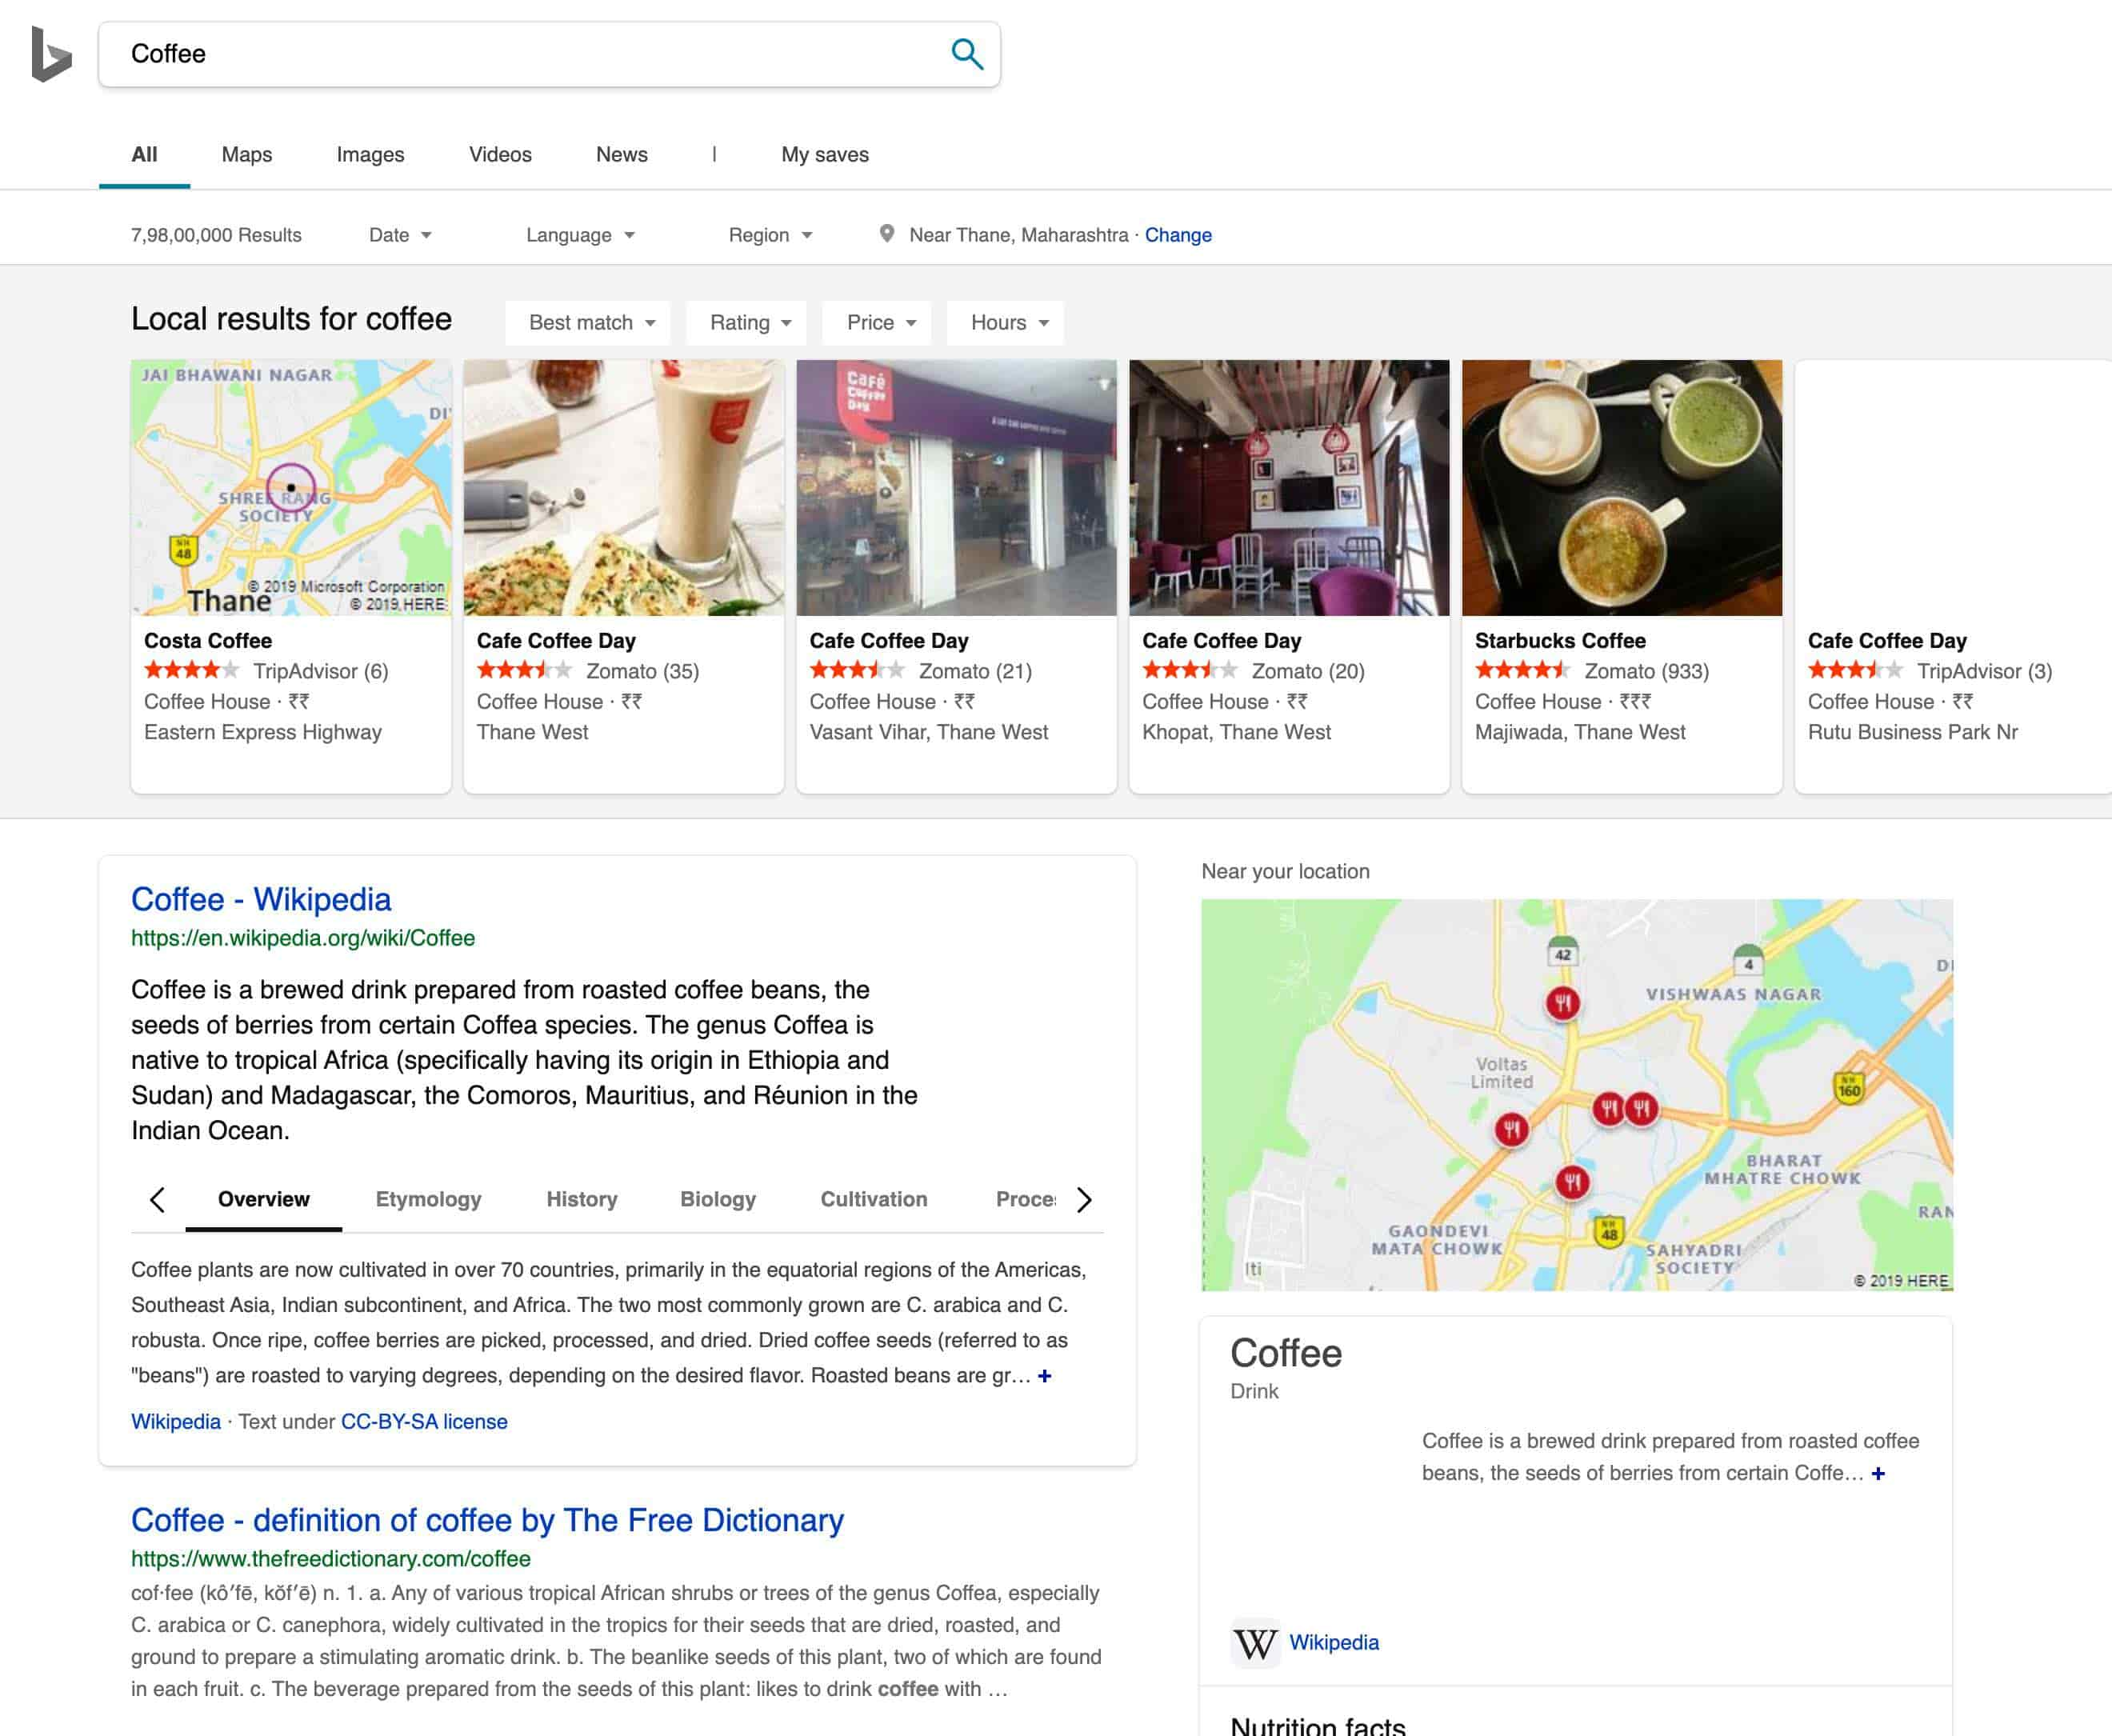 "Bing search results for q:""Coffee"""